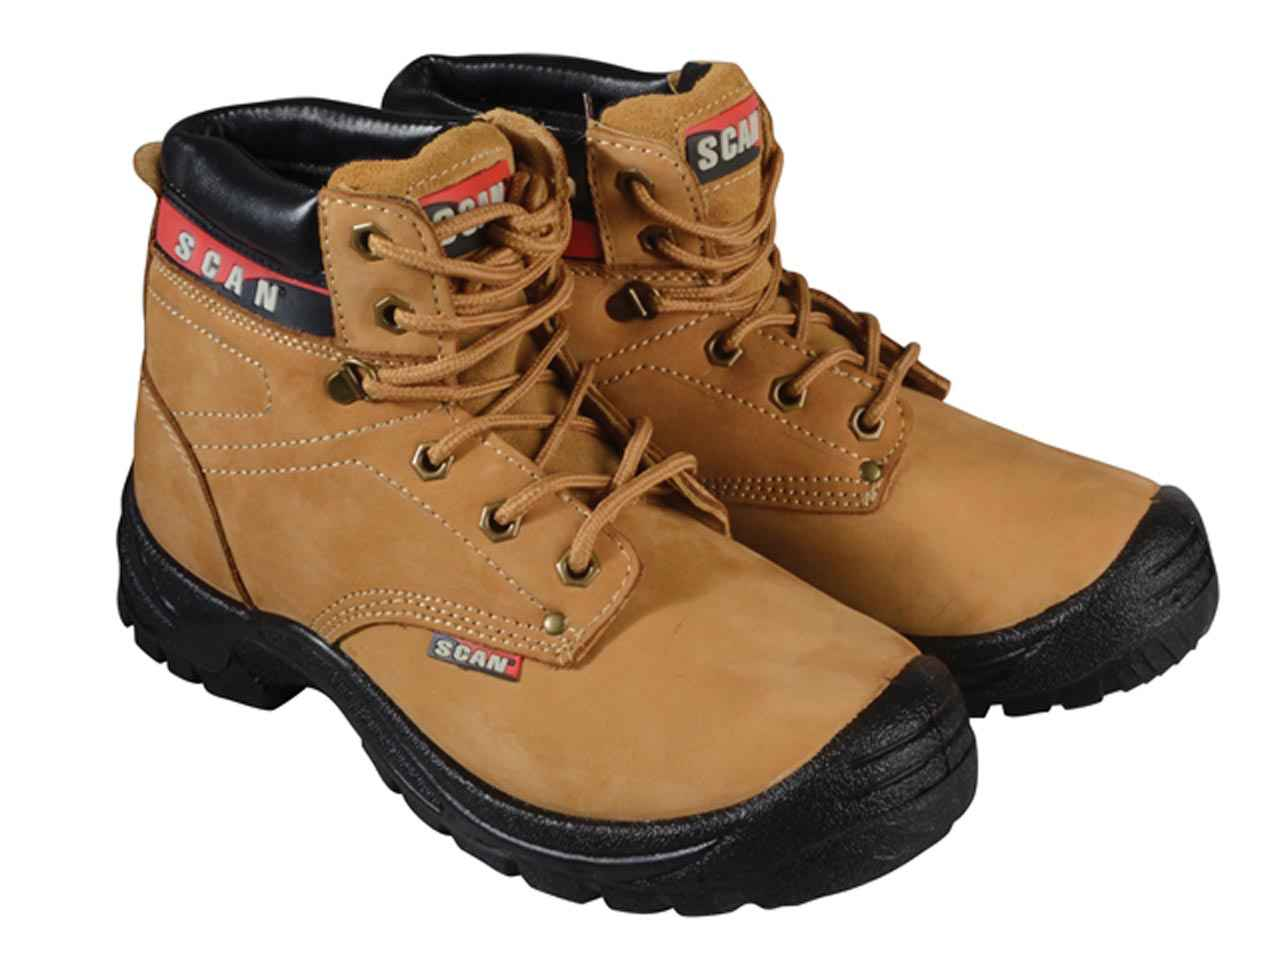 c94ca483a08 Scan Cougar Nubuck Safety Boot S1P Various Sizes